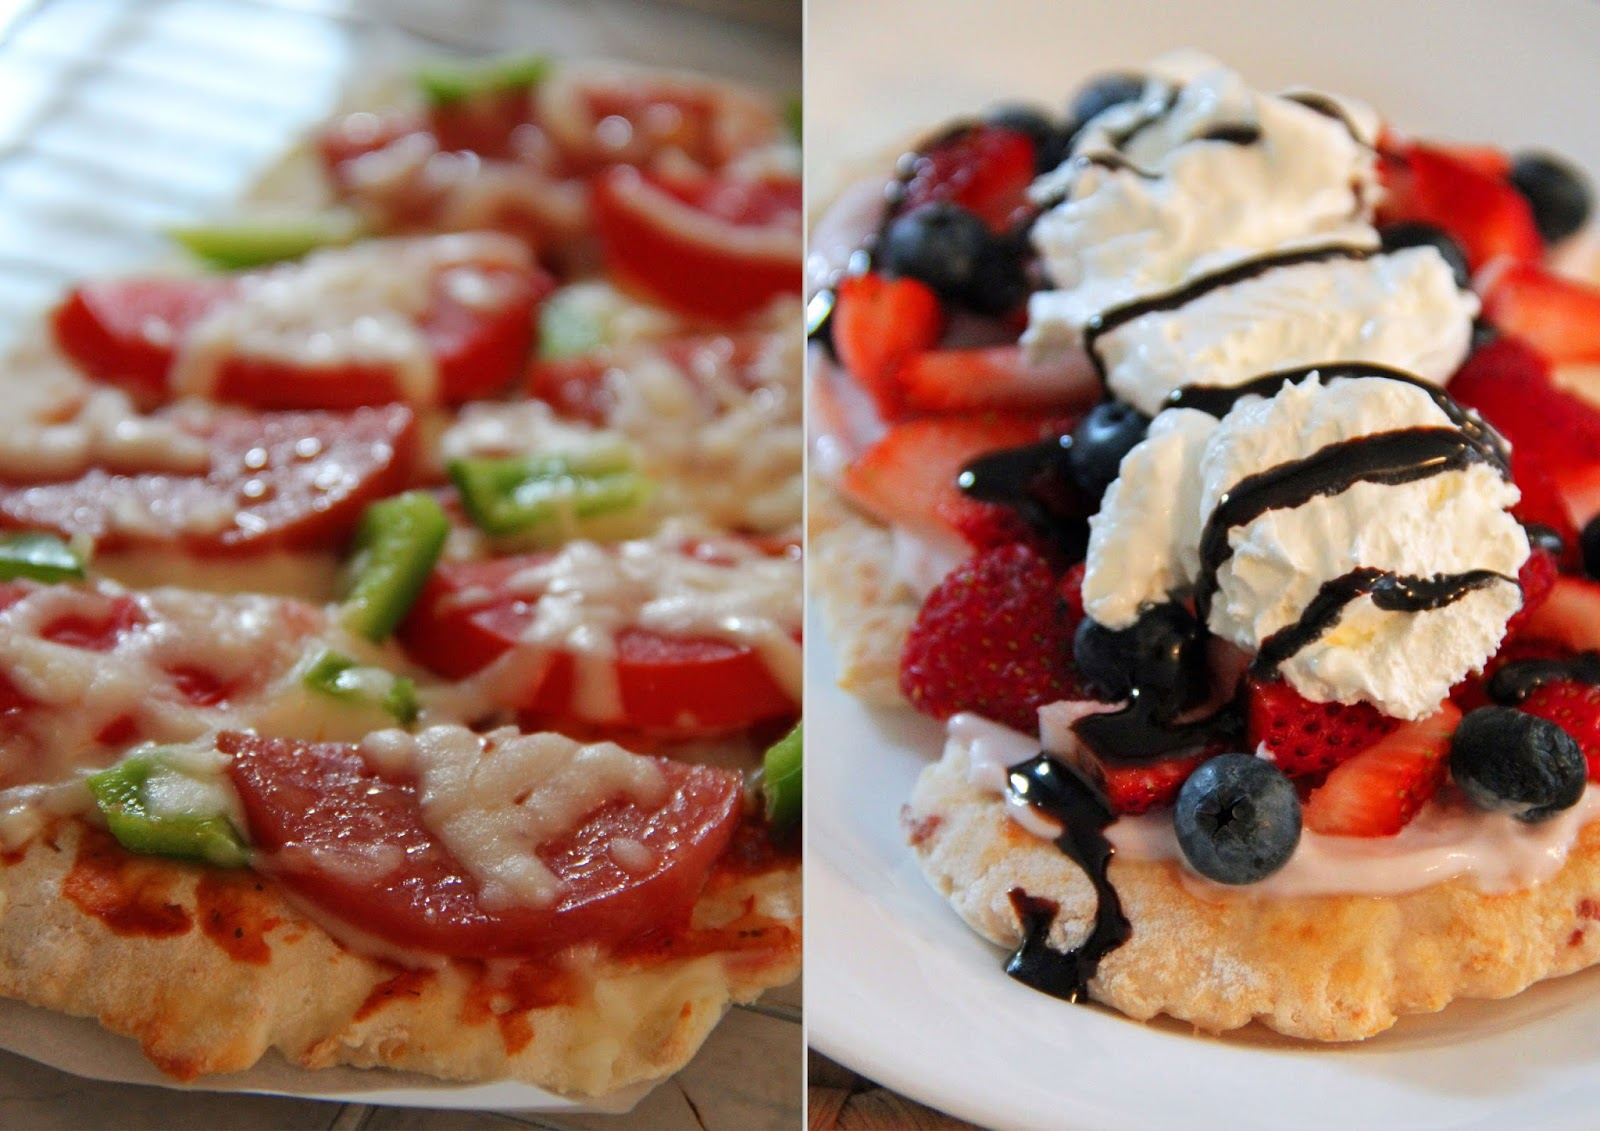 Jo and sue one dough 2 pizzas 1 sweet 1 savory single servings one dough 2 pizzas 1 sweet 1 savory single servings forumfinder Gallery